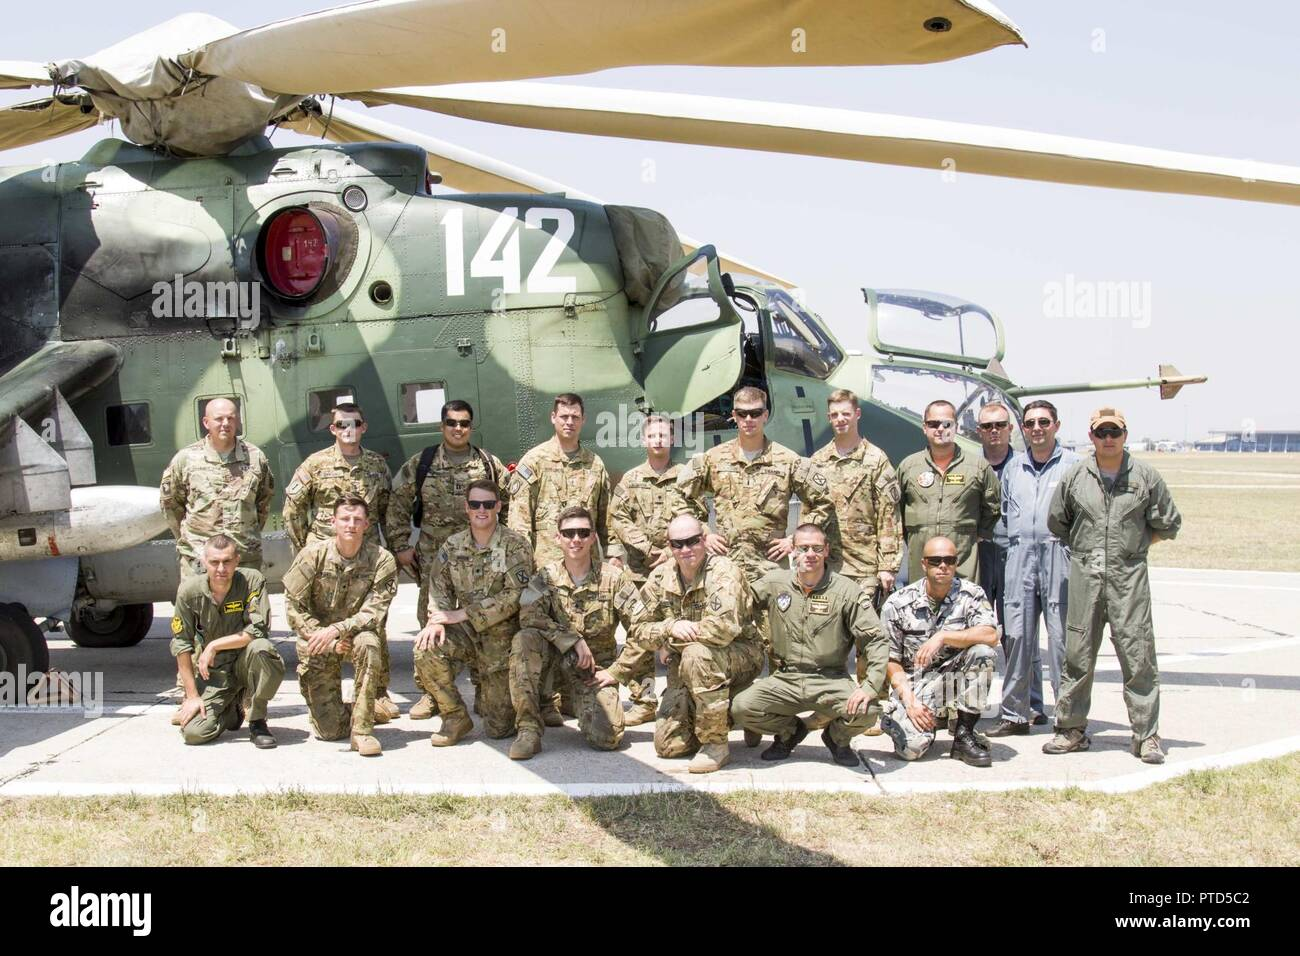 Aviators from A Company, 2-10 Assault Helicopter Battalion, pose with pilots from the Bulgarian Air Force after a successful combat search and rescue training in Plovdiv, Bulgaria, on July 11. The Aviators worked together in planning and executing the training to build interoperability during Saber Guardian 17. Stock Photo